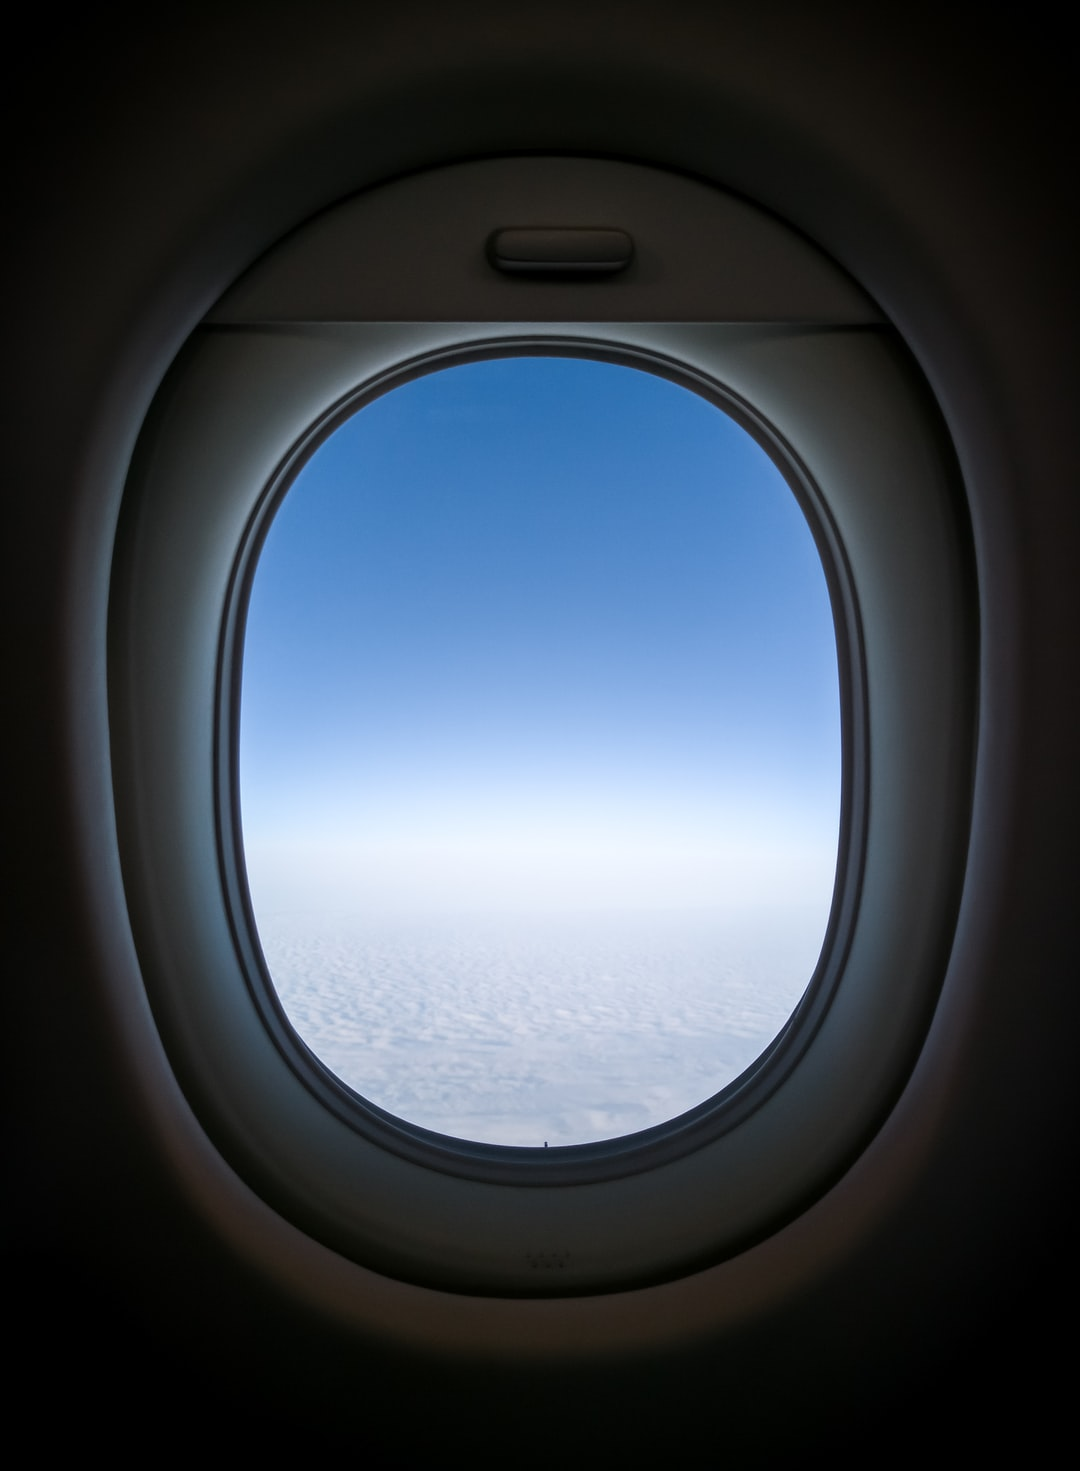 A mobilepic taken during a flight on a Falcon 900 business jet.